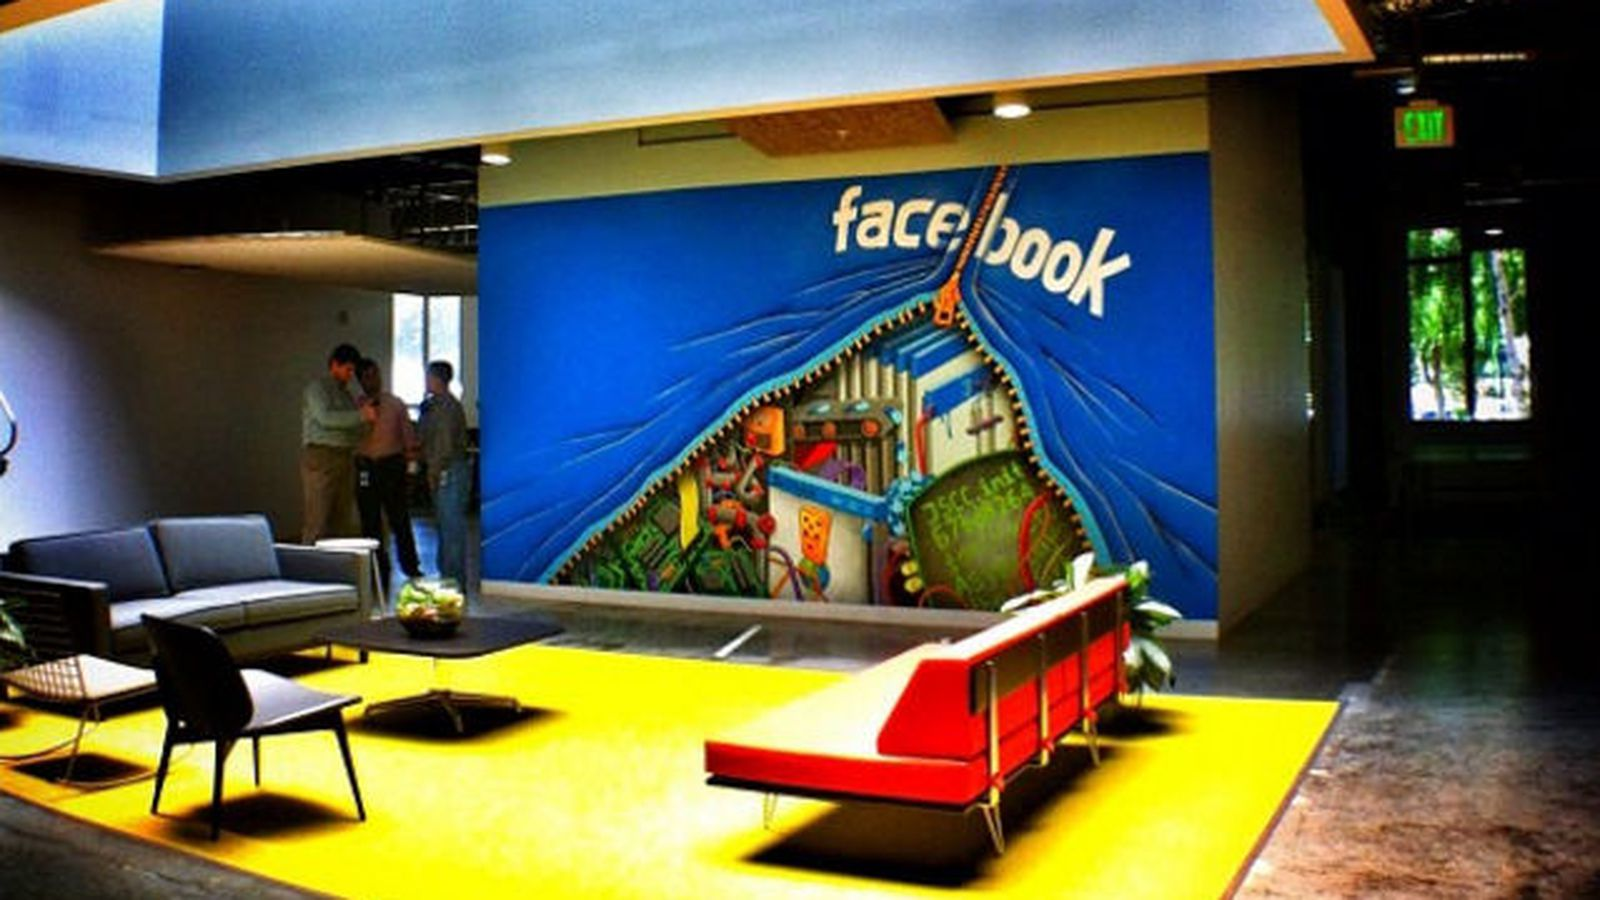 One Year Later Facebook Hq Is Still Ready For Its Close